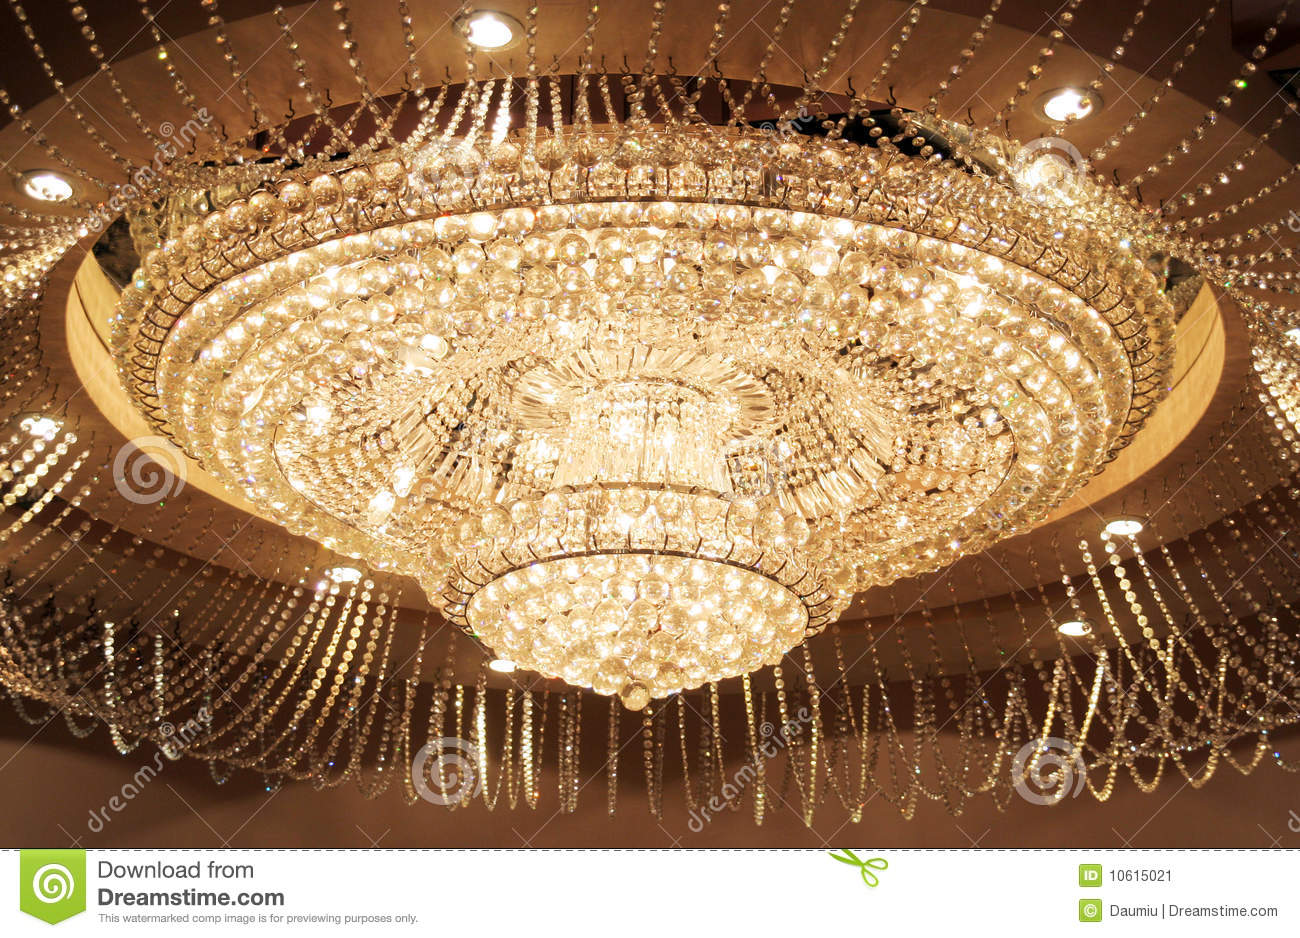 Grand crystal chandelier stock image image of texture 10615021 grand crystal chandelier aloadofball Images